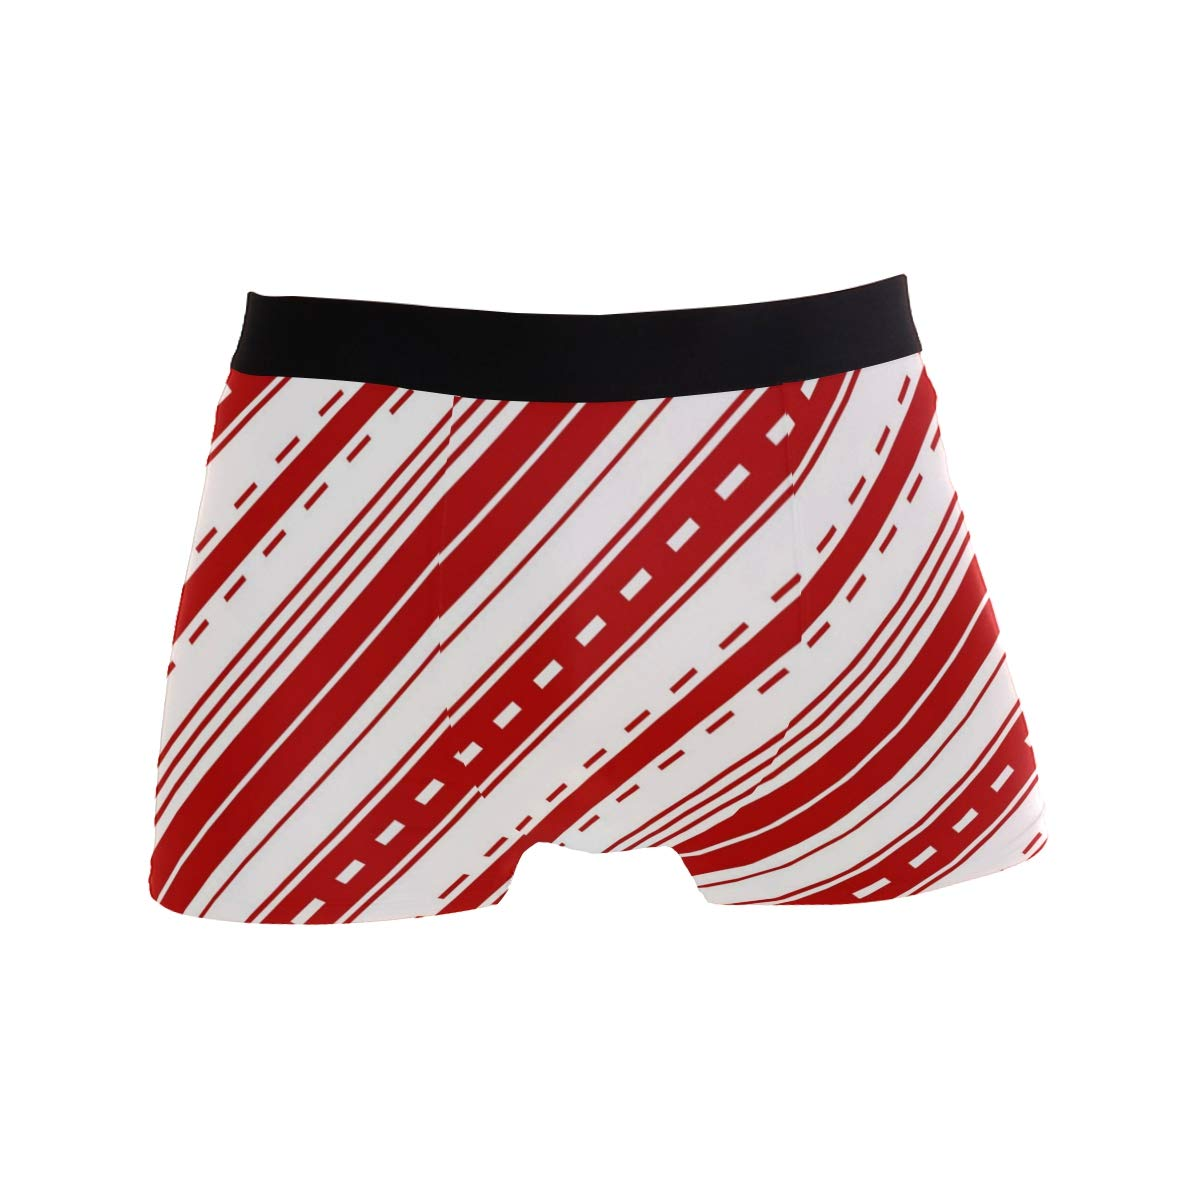 Red Diagonal Striped Decoration Mens Sports Performance Shorts Underwear 2 Pack